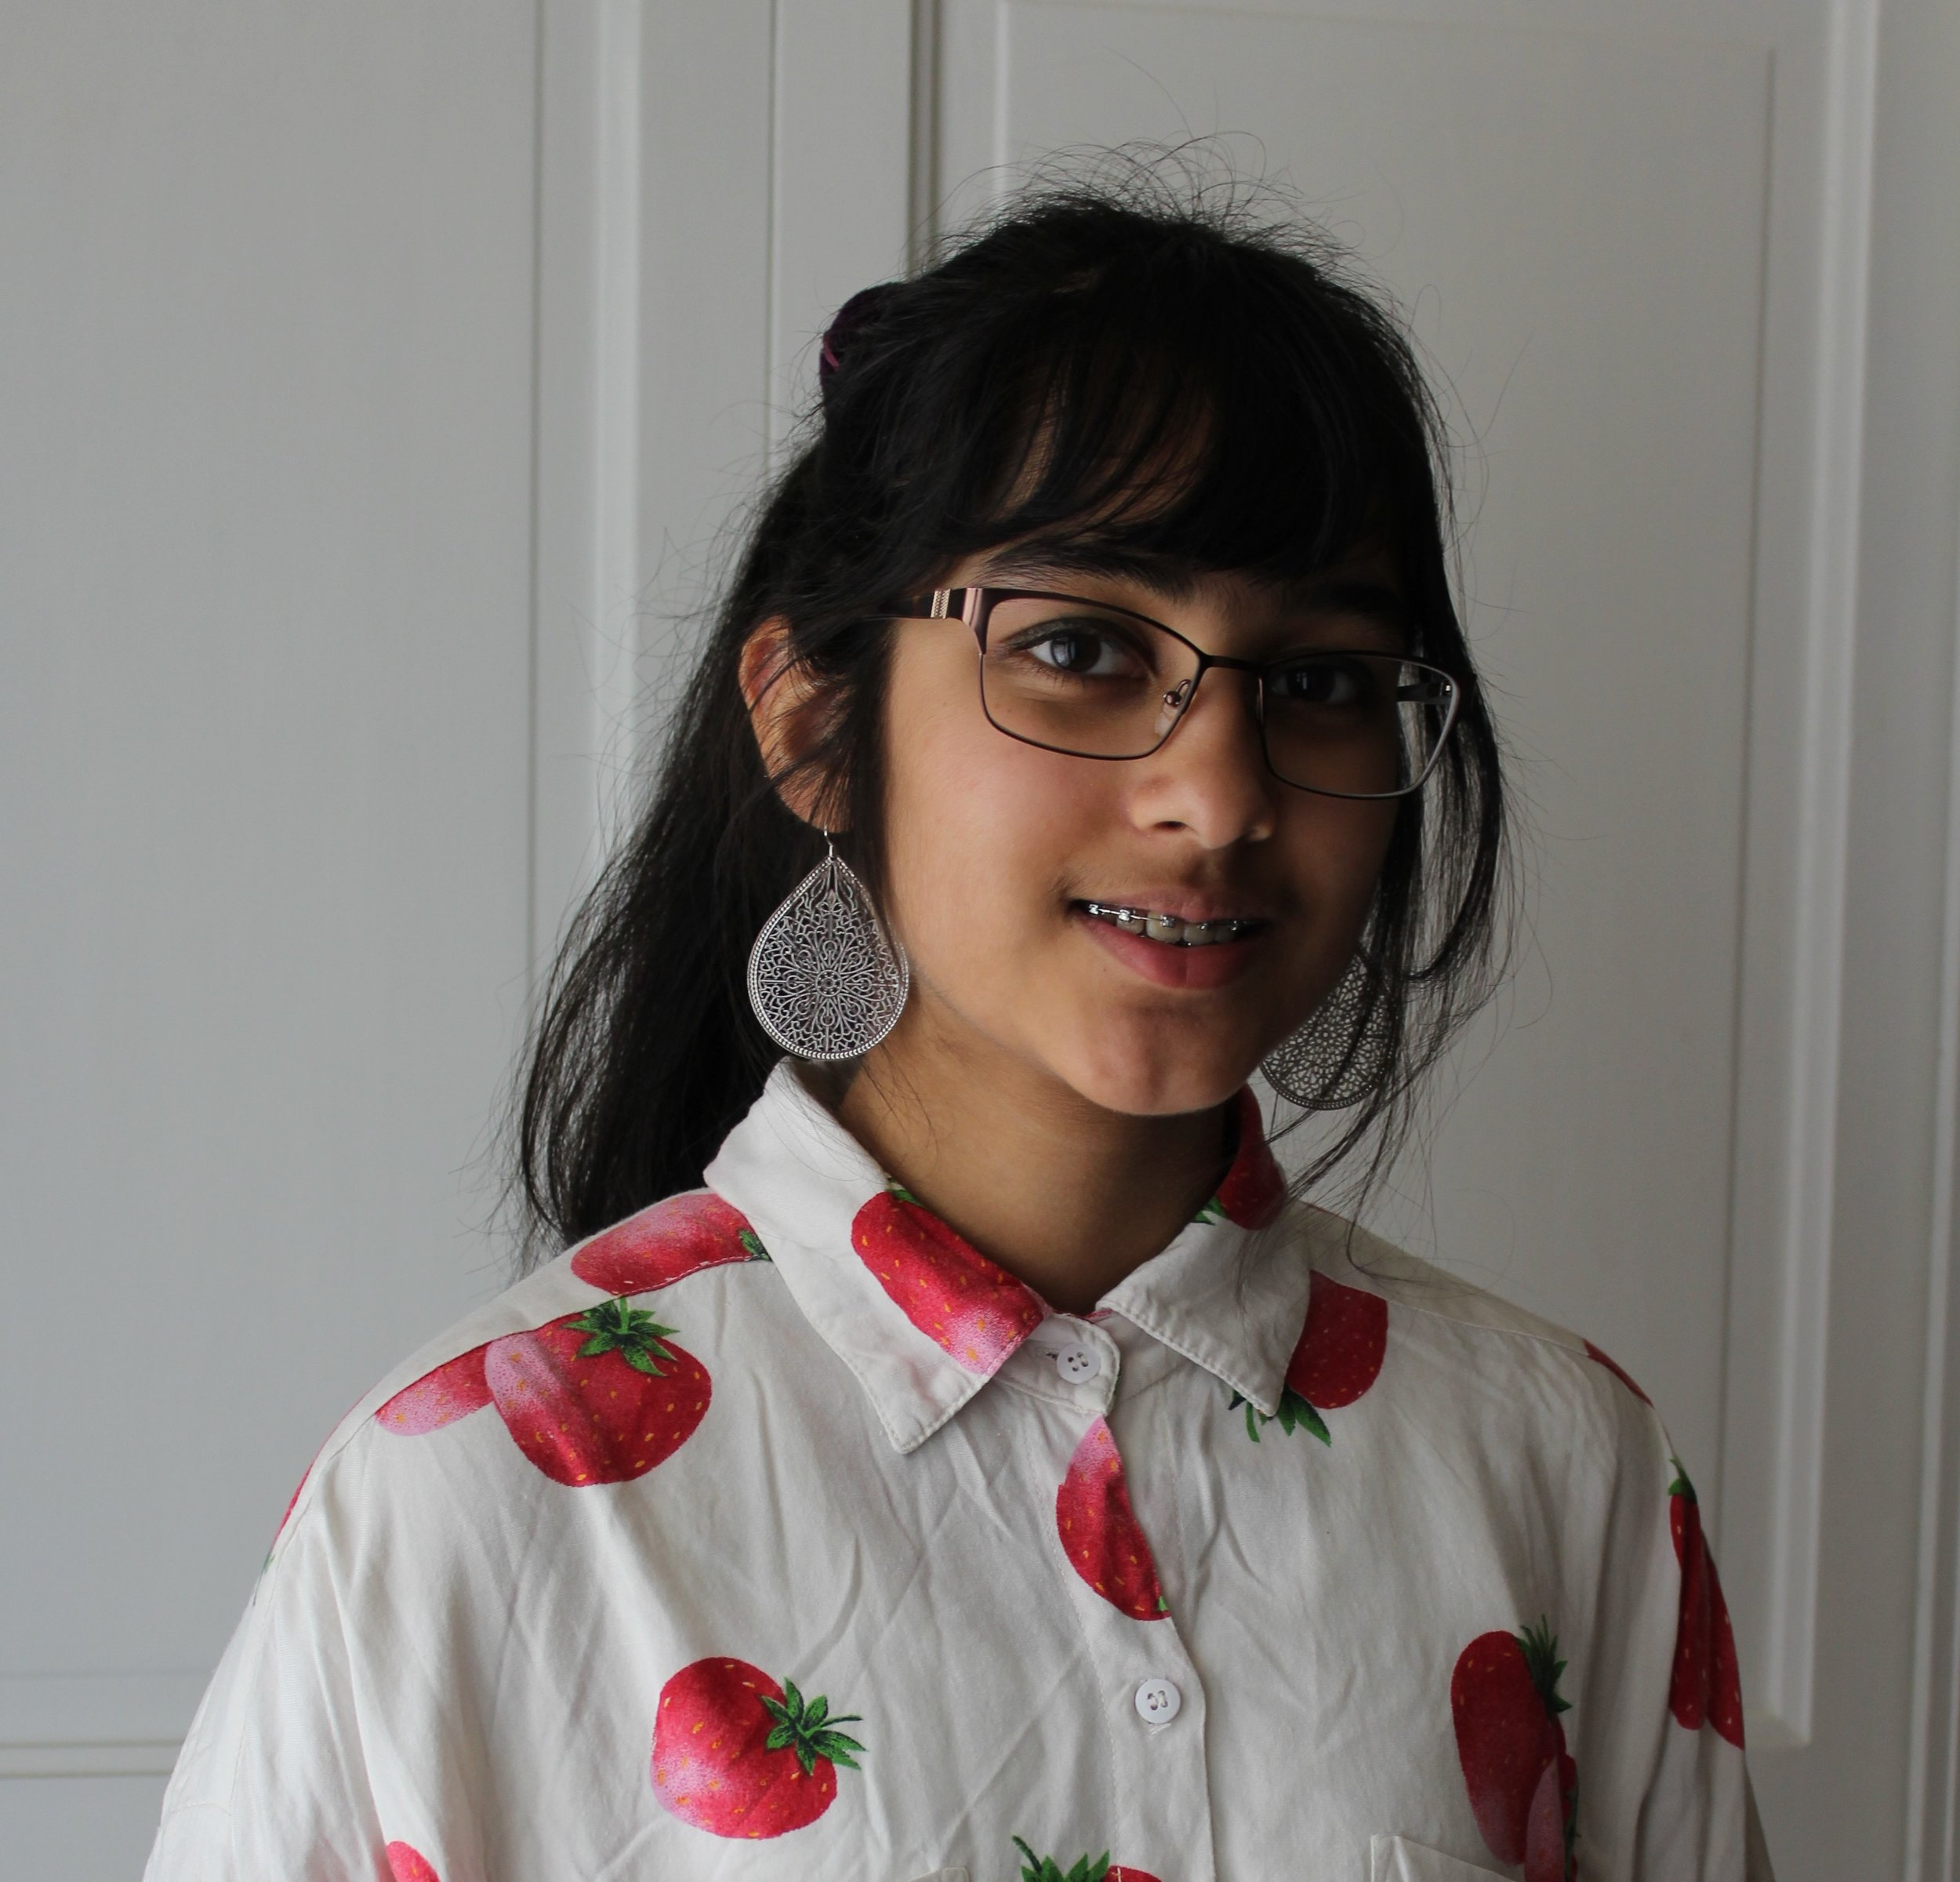 Sandhya Srinivasan - Sandhya Srinivasan is a student and avid writer in Troy, Michigan. She can be found either reading, drawing, listening to music whilst doing a crossword puzzle, or watching movies and television shows. She loves collecting foreign currency, model horses, and hotel key cards, but also stories, to write later.